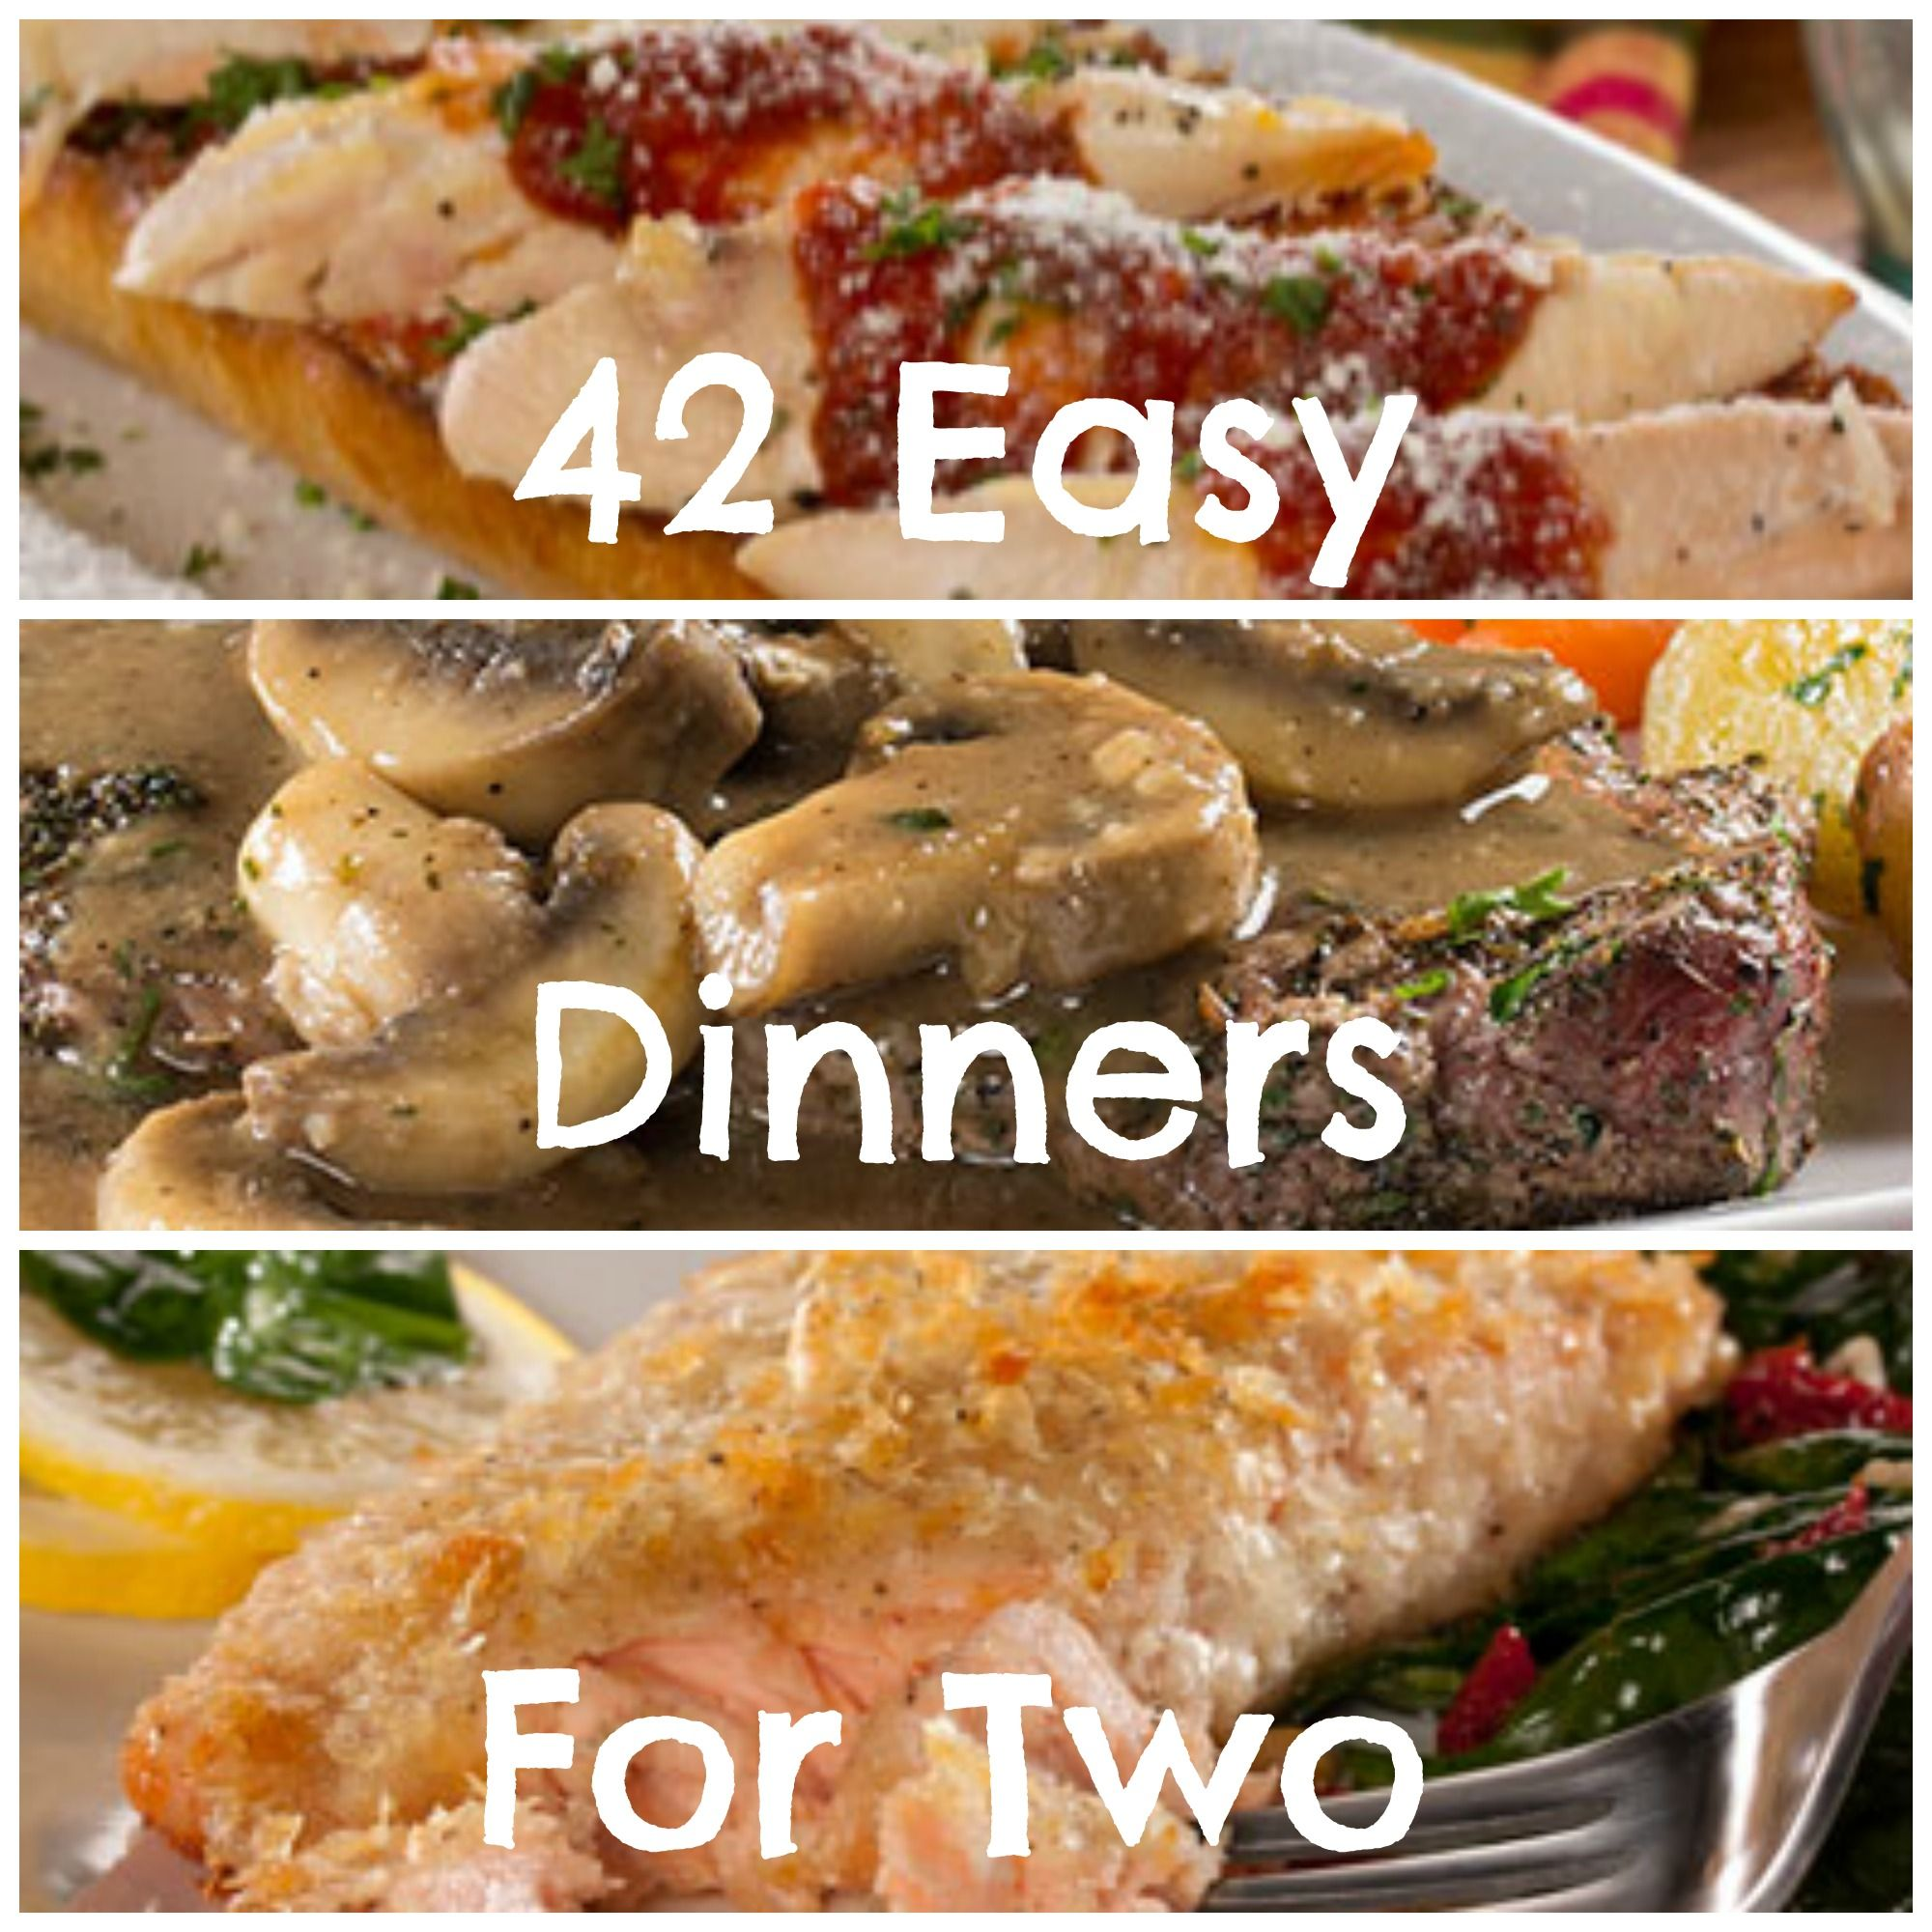 64 Easy Dinner Recipes for Two | Dinners, Food and Recipes